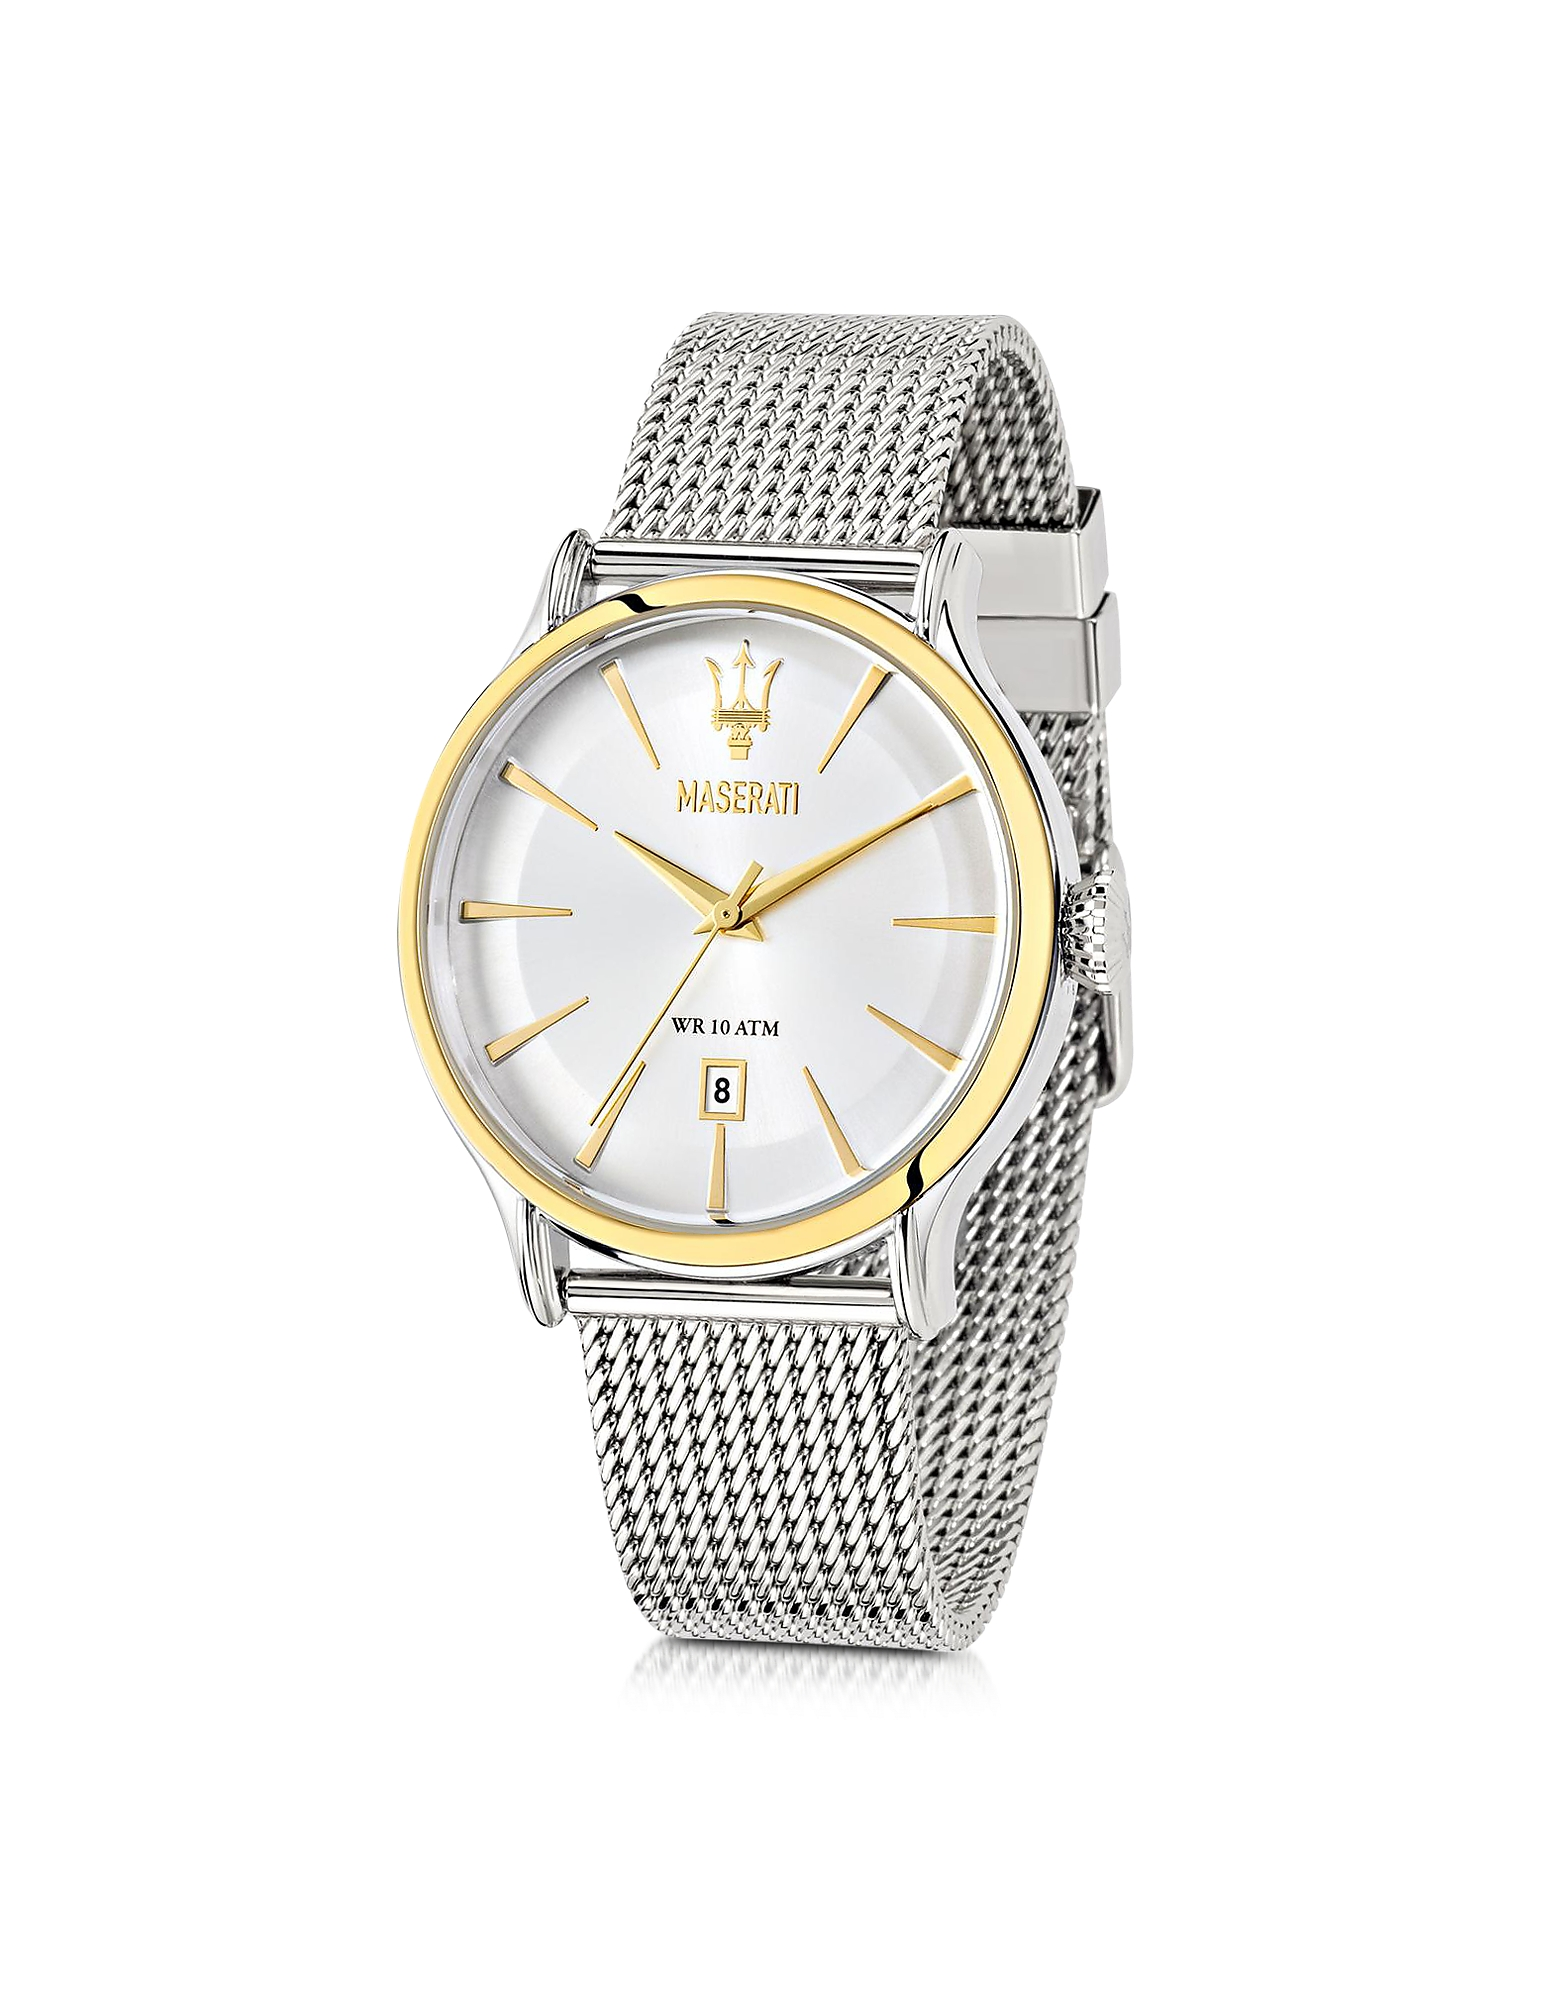 Maserati Men's Watches, Epoca White Dial Stainless Steel Men's Watch